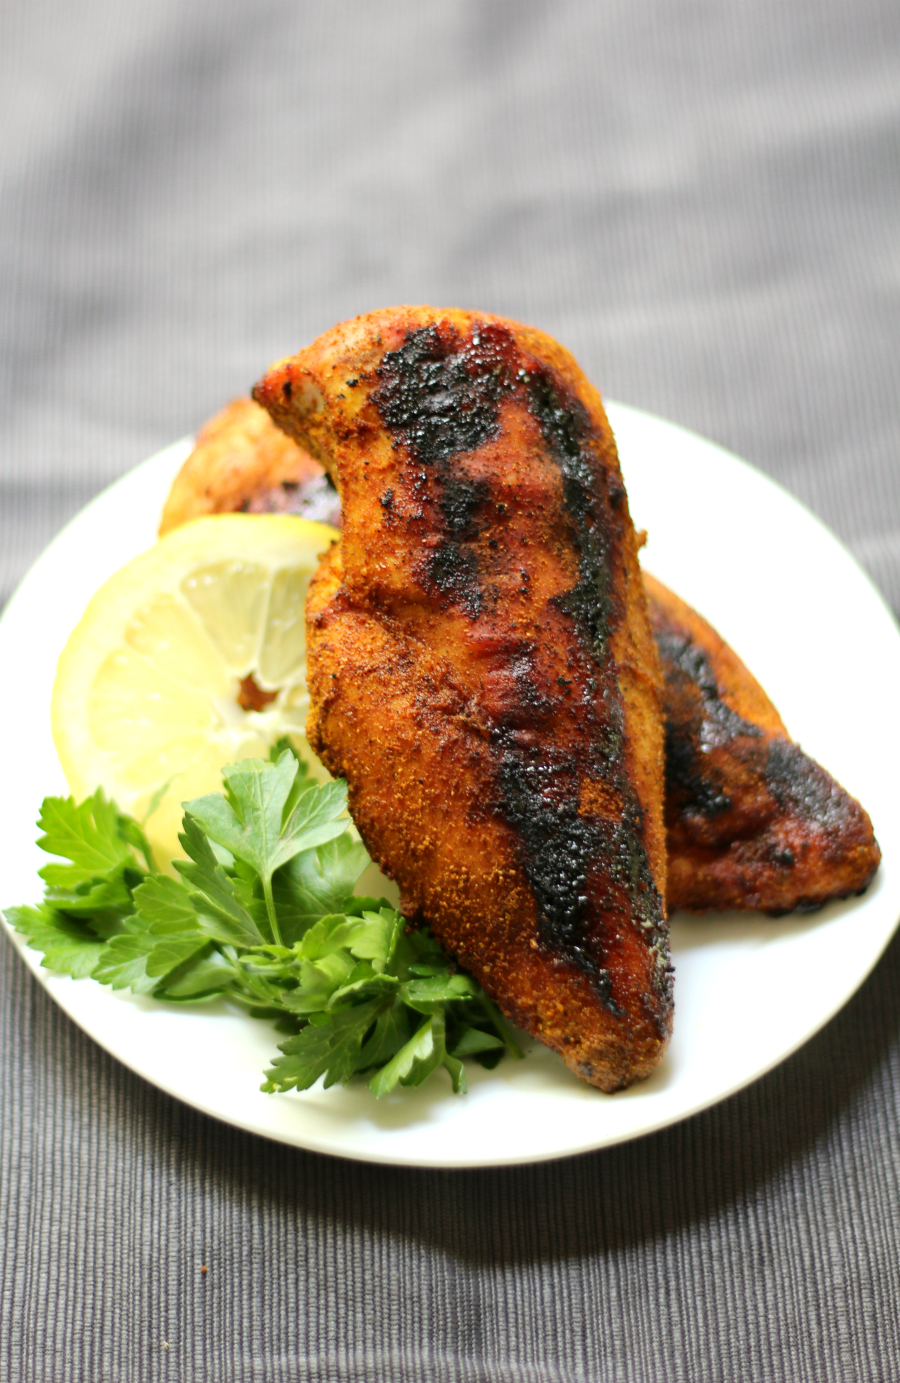 Grilled Ras El Hanout Chicken | Strength and Sunshine @RebeccaGF666 With an essential Moroccan spice blend, Grilled Ras El Hanout Chicken will become a new favorite healthy dinner recipe to throw on the grill. Gluten-free, paleo, and Whole 30 approved, entice the senses of smell and taste with this exotic dish.